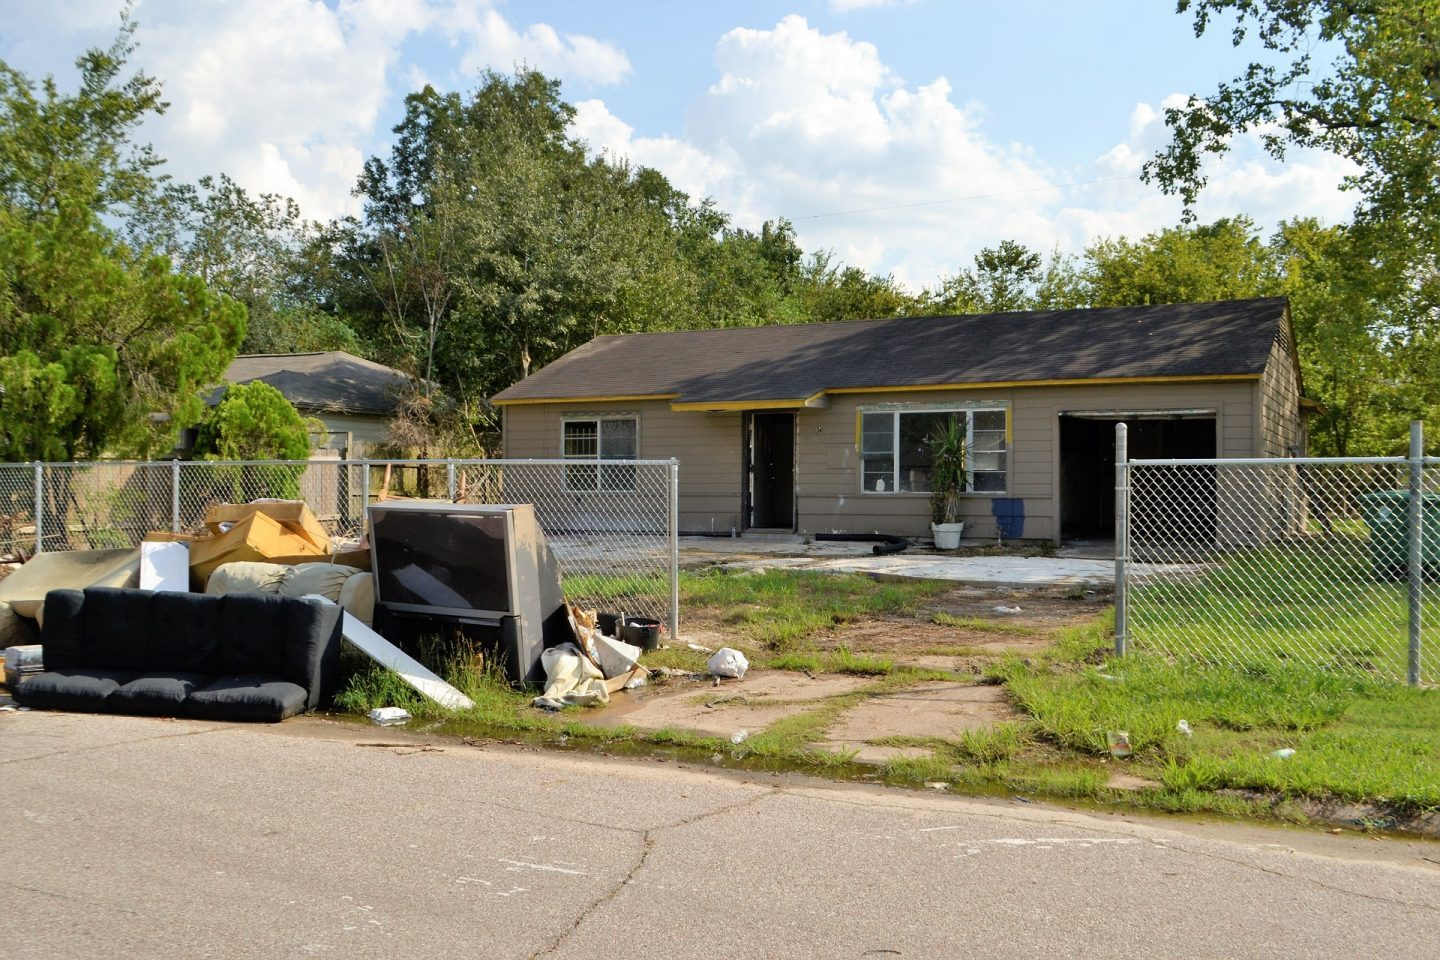 Distressed Homes in Central Florida